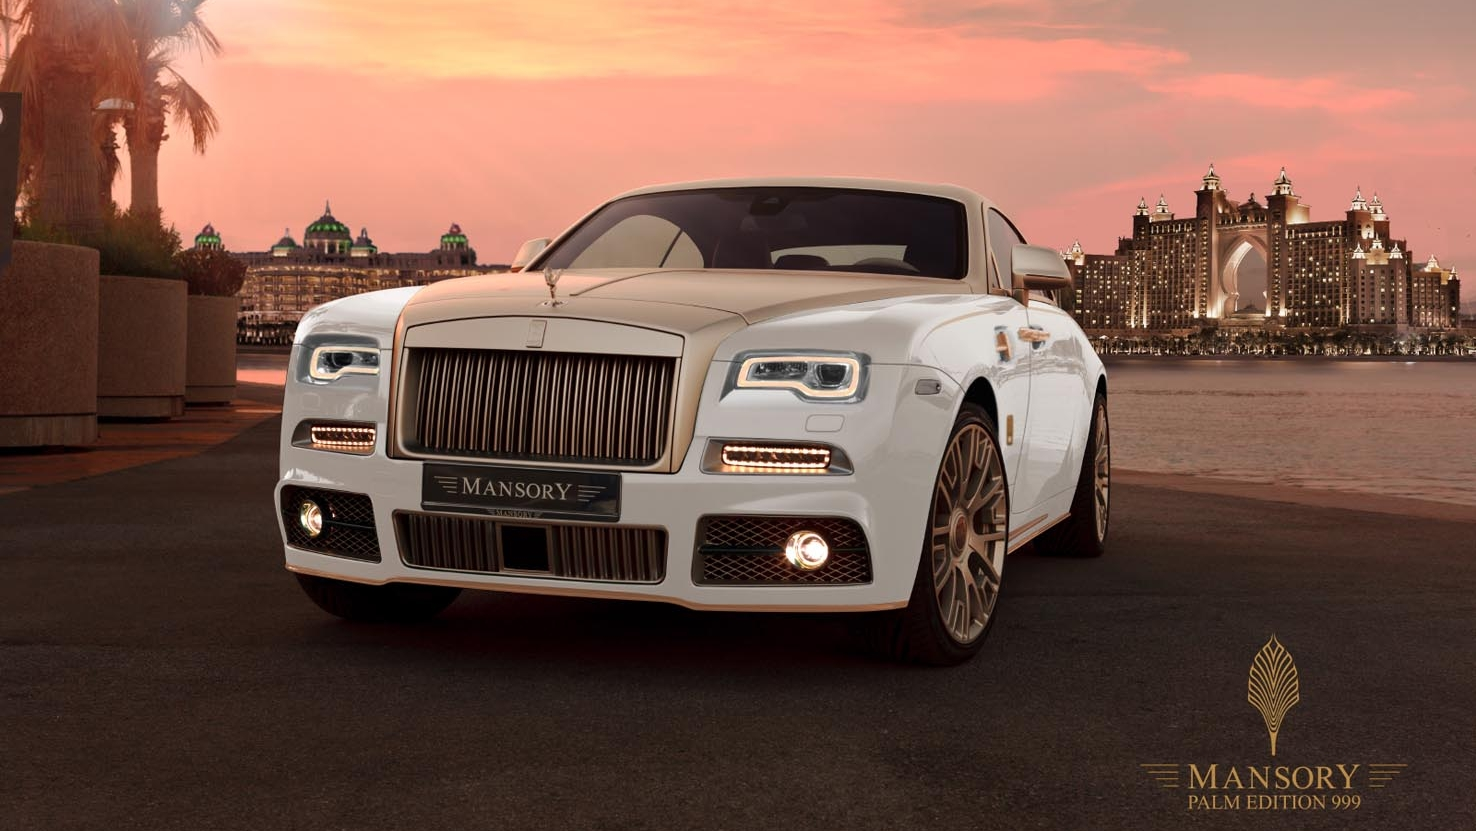 2016 Rolls Royce Wraith Palm Edition 999 By Mansory Top Speed